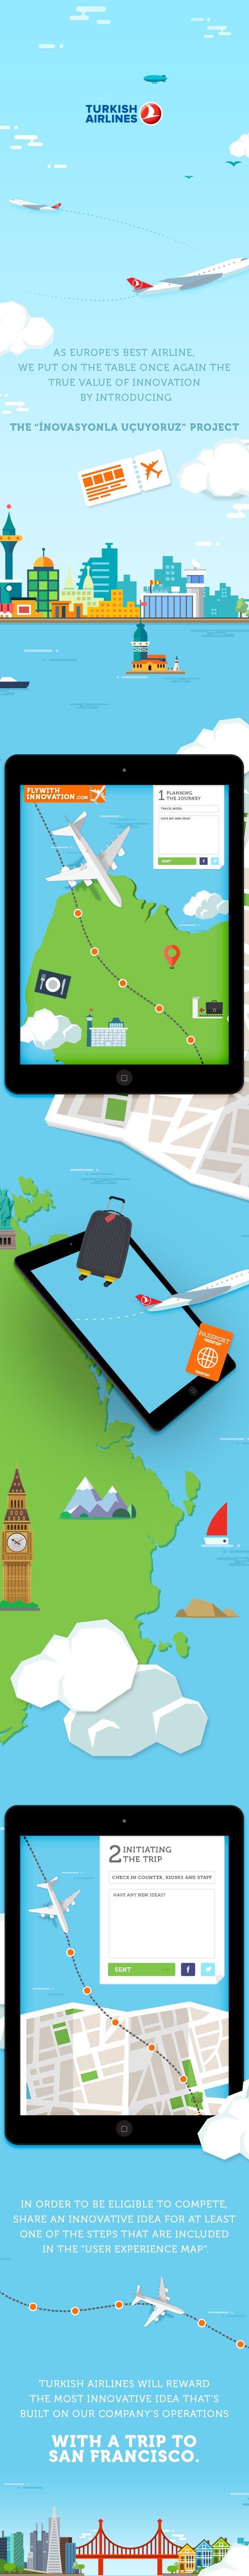 https://www.behance.net/gallery/25010511/Turkish-Airlines-Fly-with-innovations